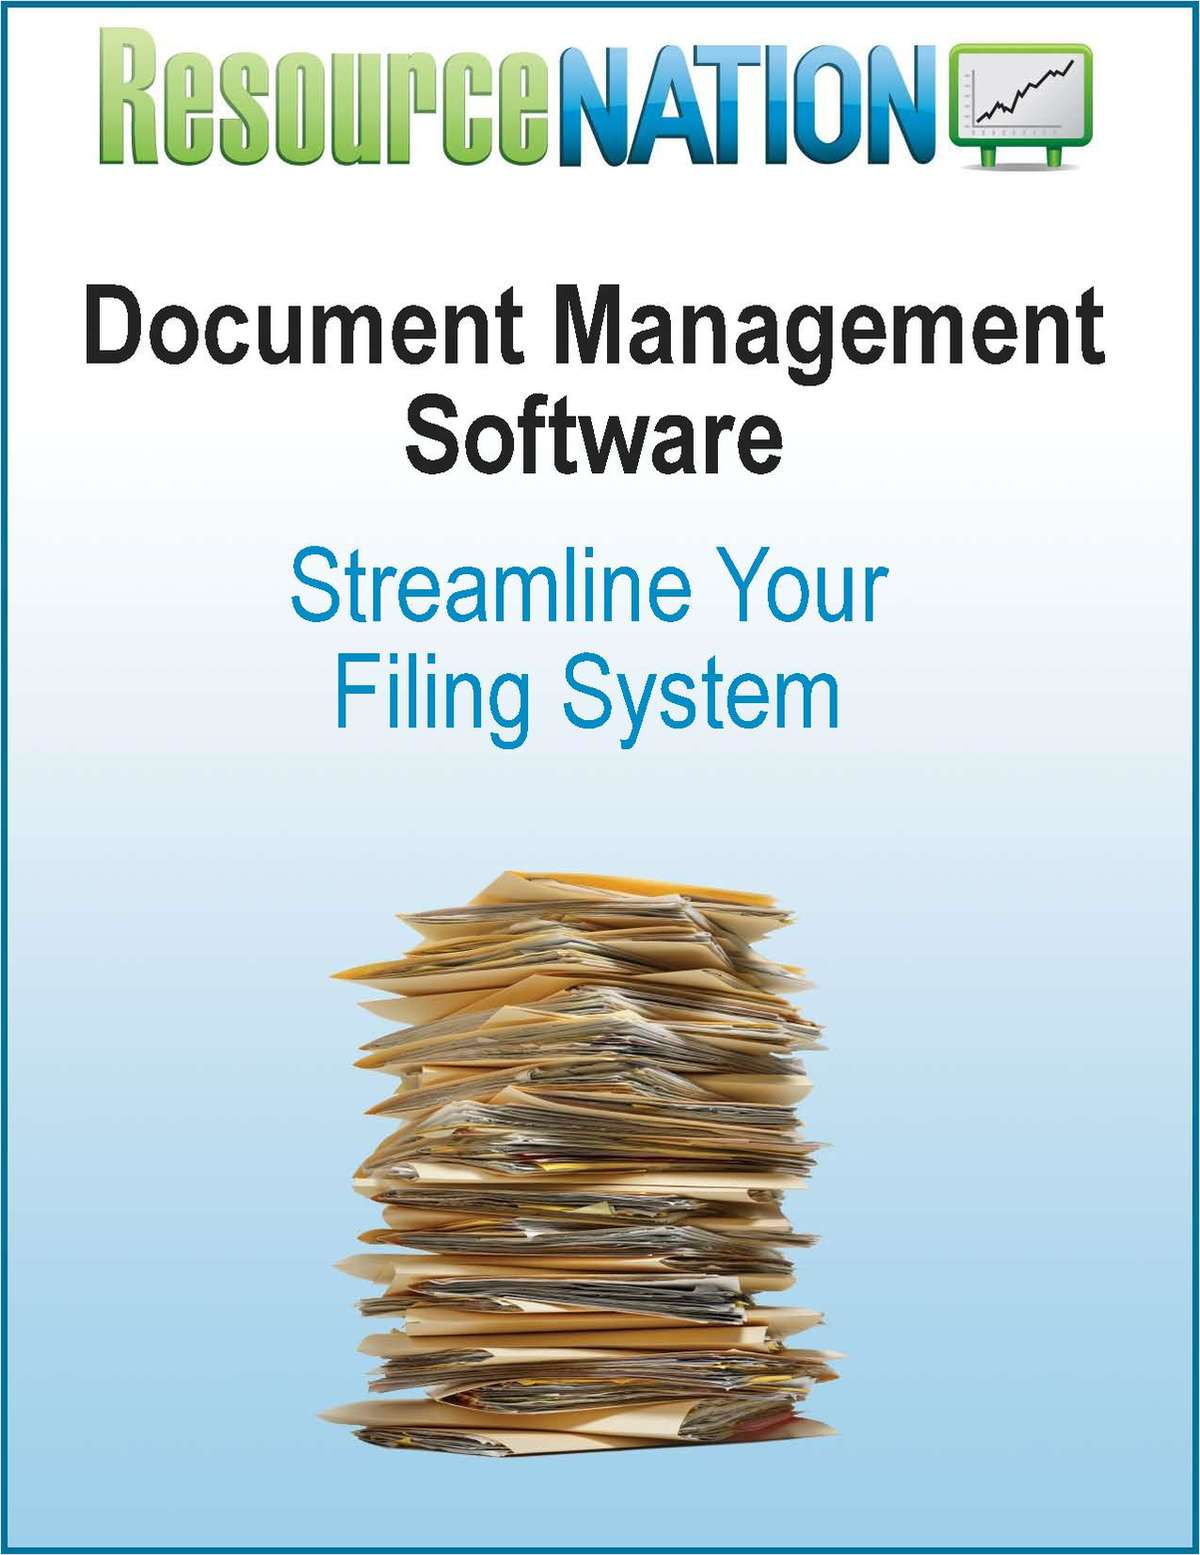 Organize Your Files with Document Management Software